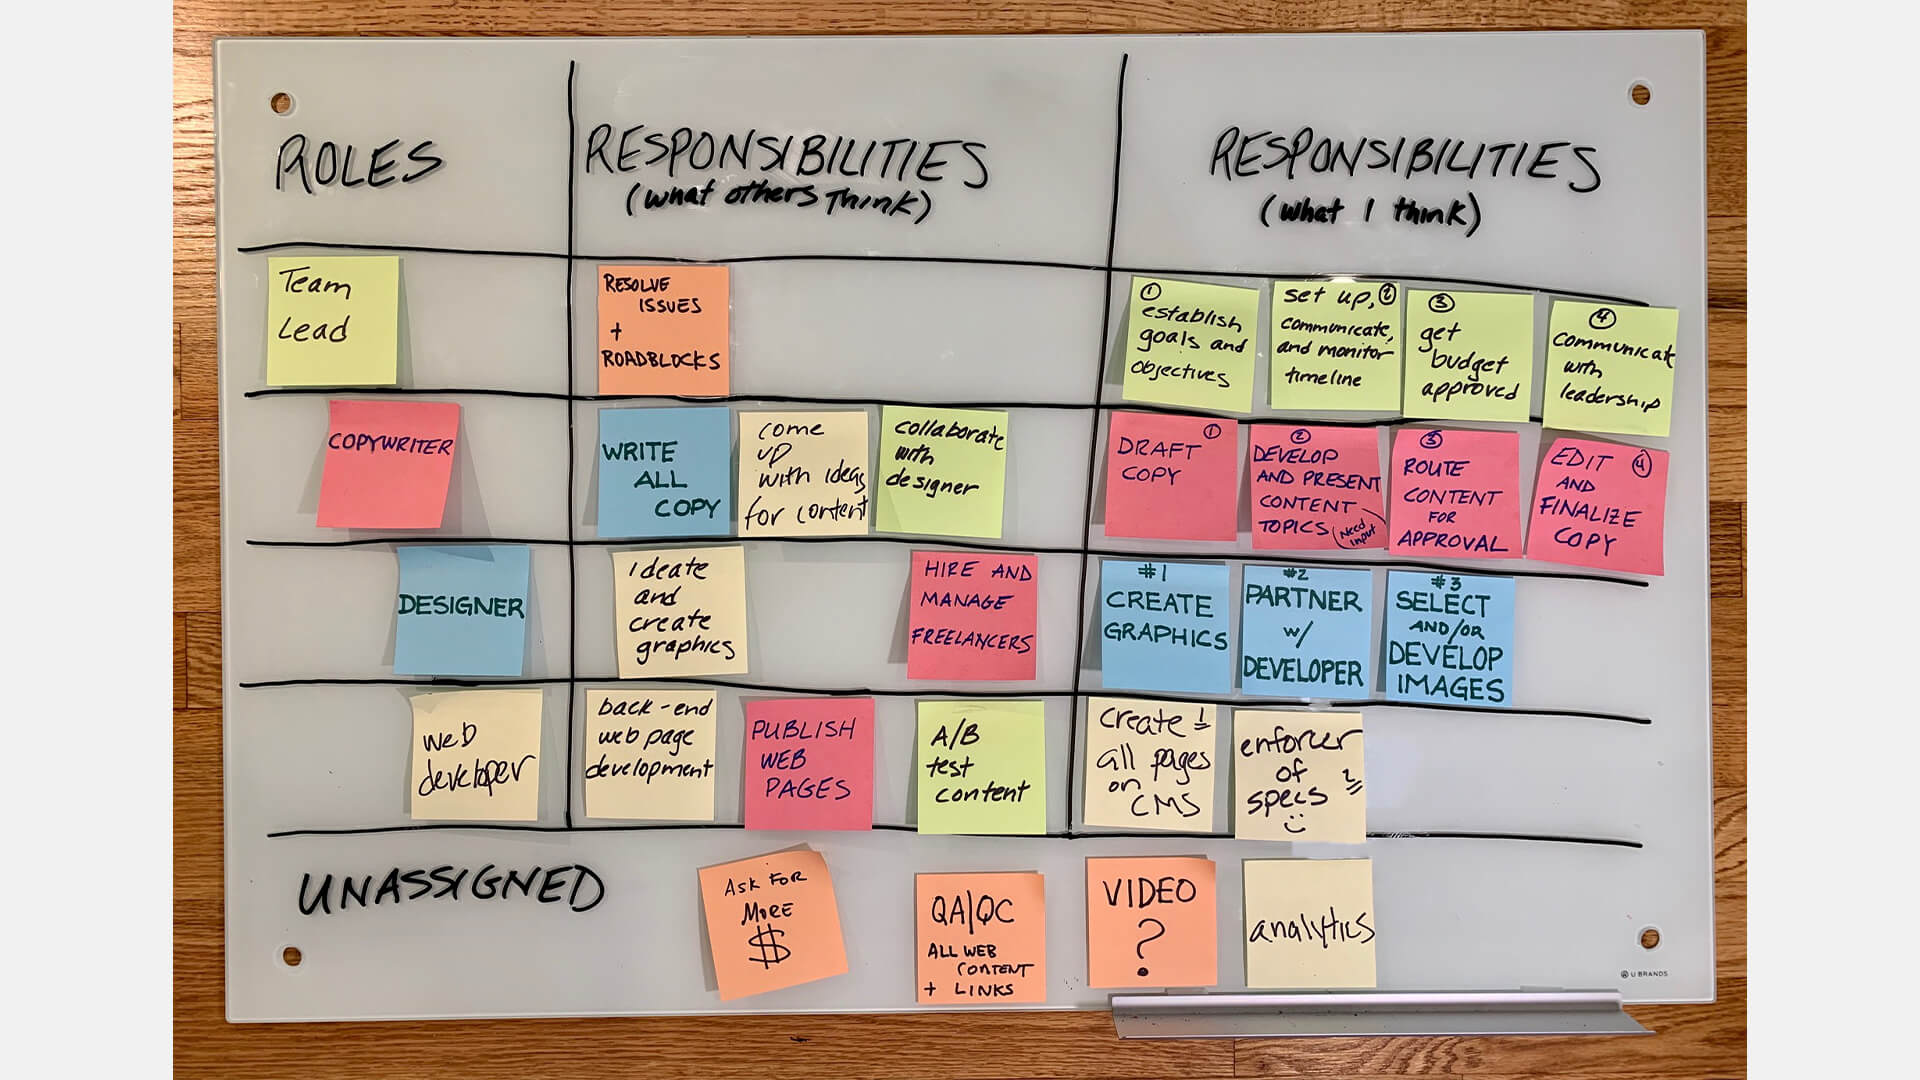 Board with sticky notes